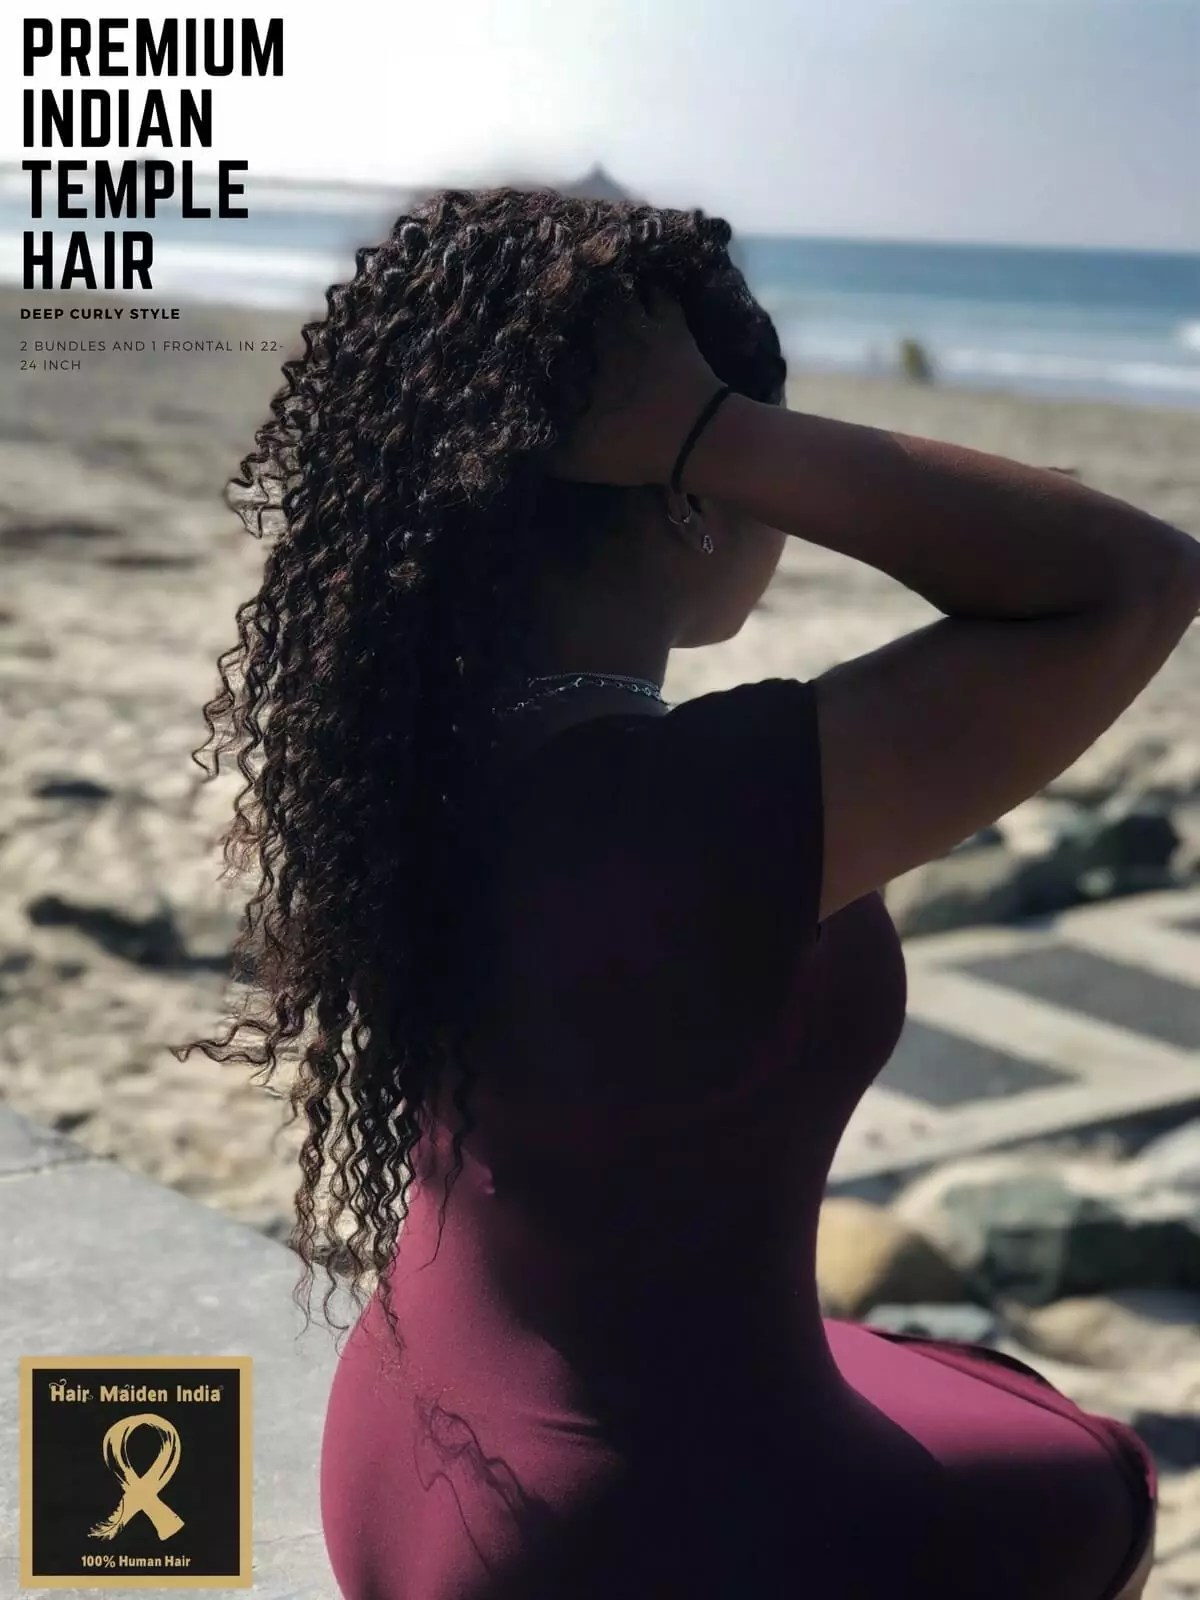 Curly raw hair extensions from India